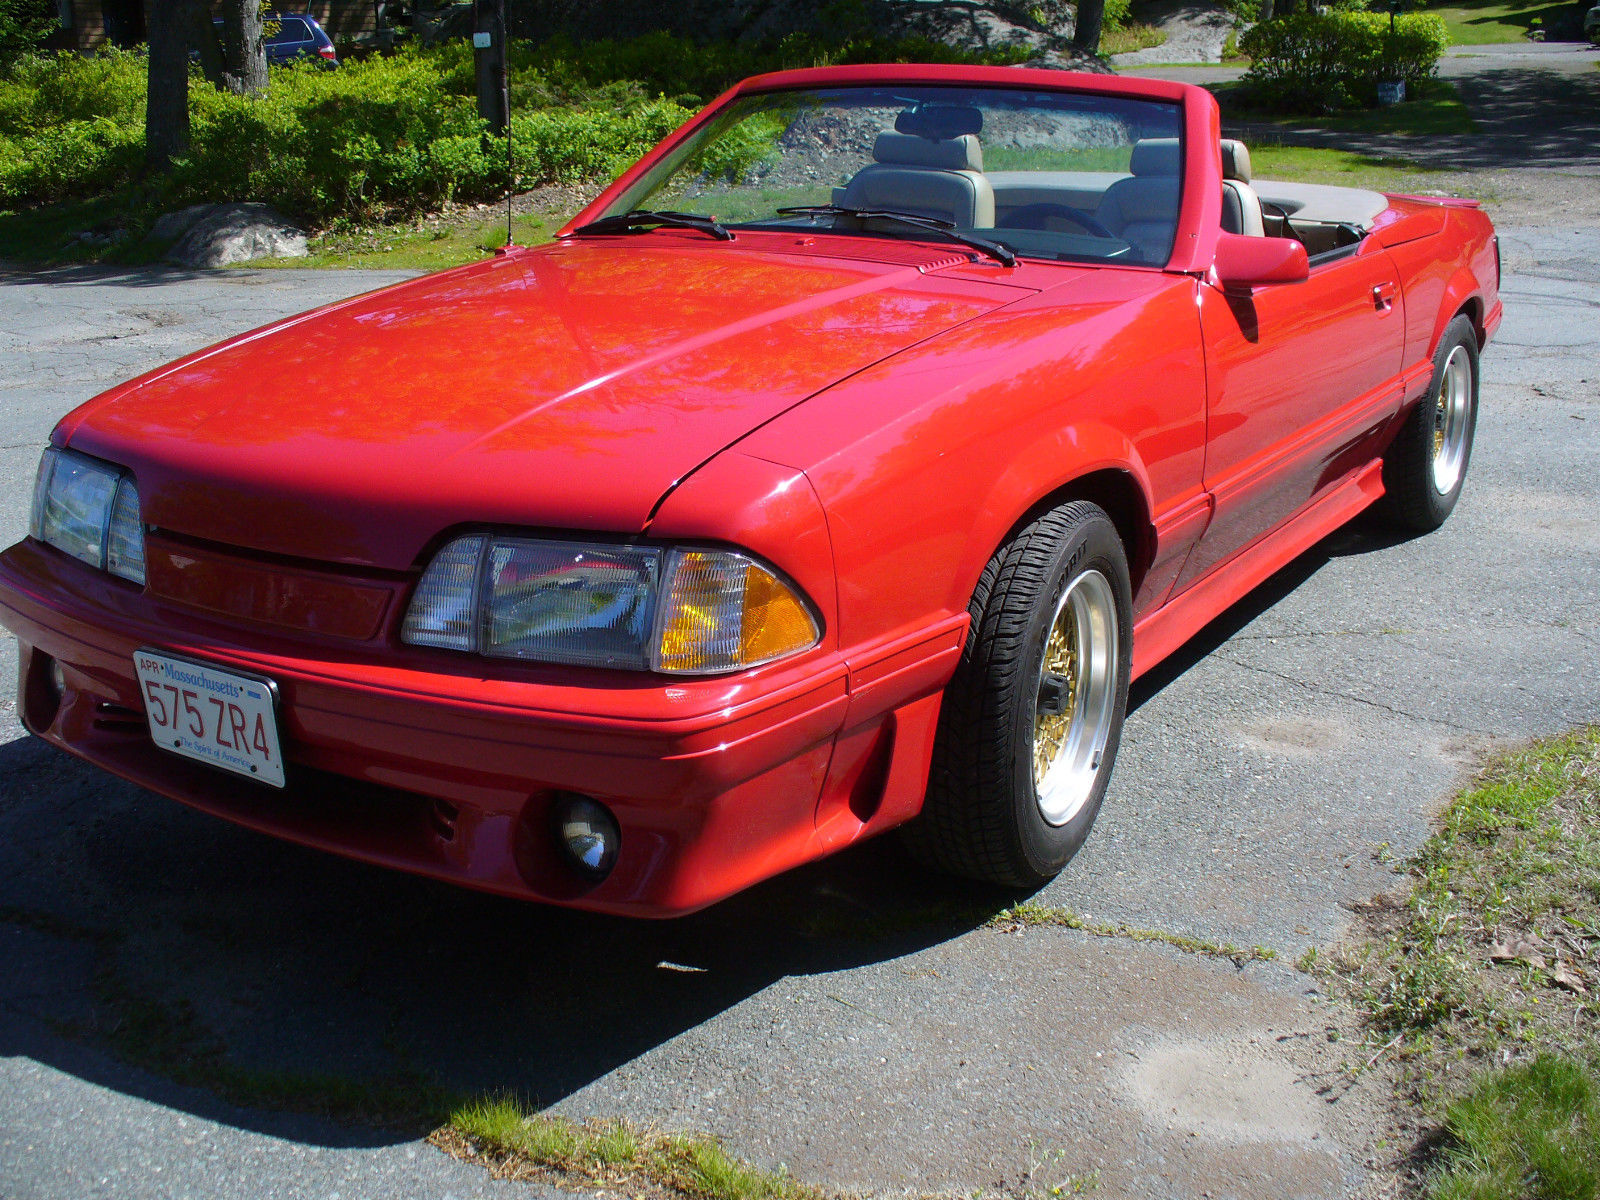 1987 mustang mclaren convertible 456 auto red with beige. Black Bedroom Furniture Sets. Home Design Ideas